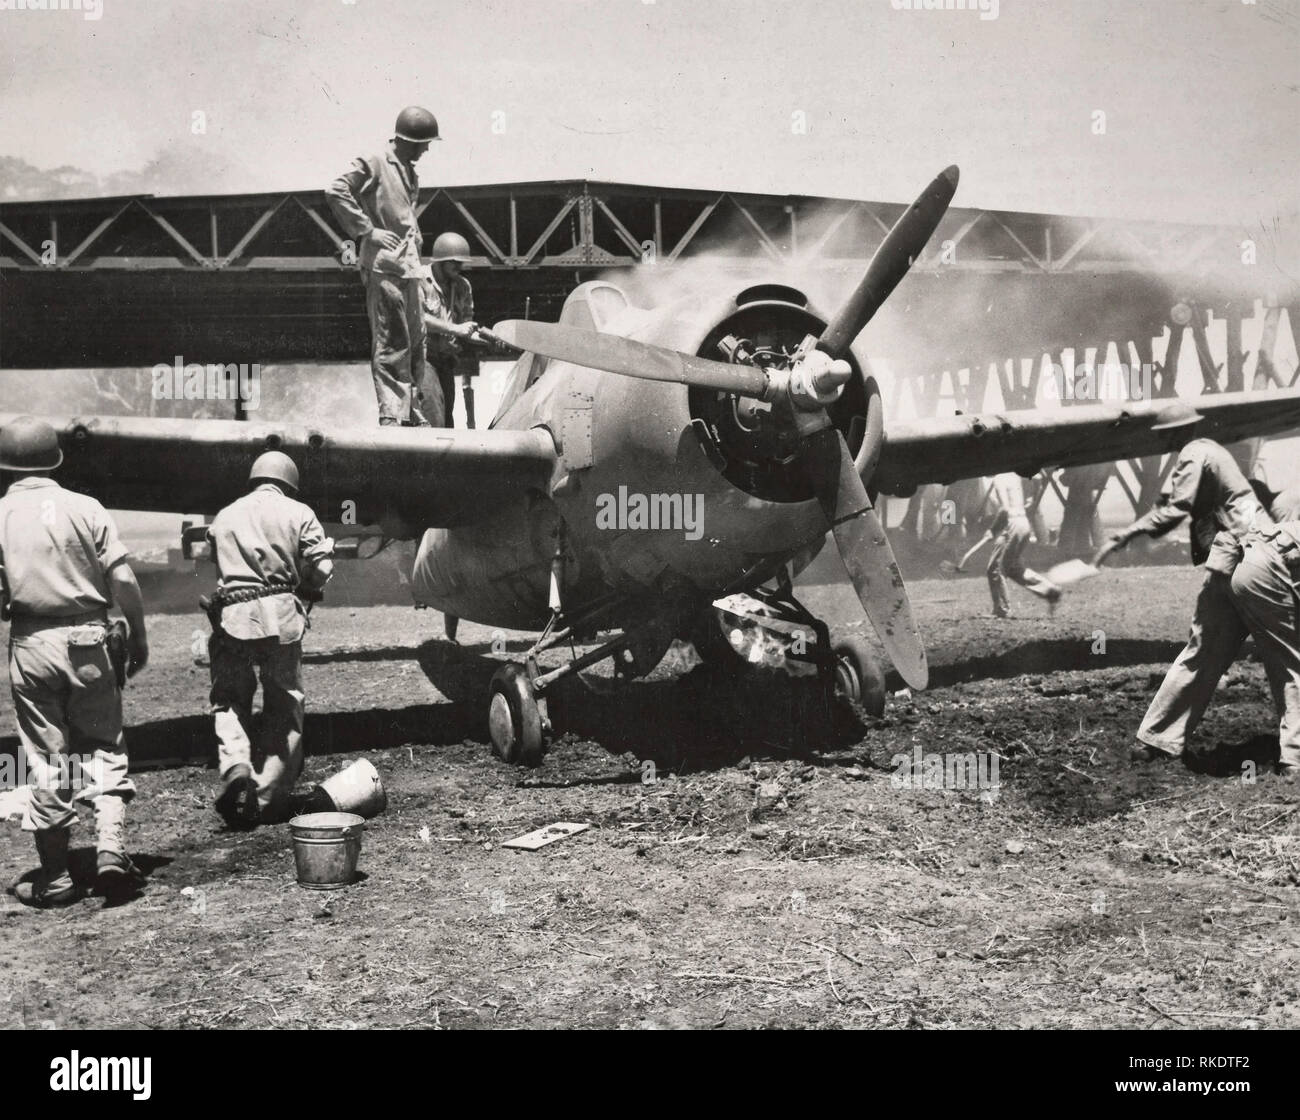 """Marine Fighter Plane Saved. Set afire by a Japanese bomb hit on the hanger in the background, this Marine fighter plan was pulled into the open by Leatherneck who used dirt and chemicals to extinguish the flames. The plane, a Grumman """"Wildcat"""" was NOT damaged seriously and was able to return to the air. The picture was taken shortly after the Marines captured a strategic Guadalcanal airport from the Japanese. 1942 - Stock Image"""